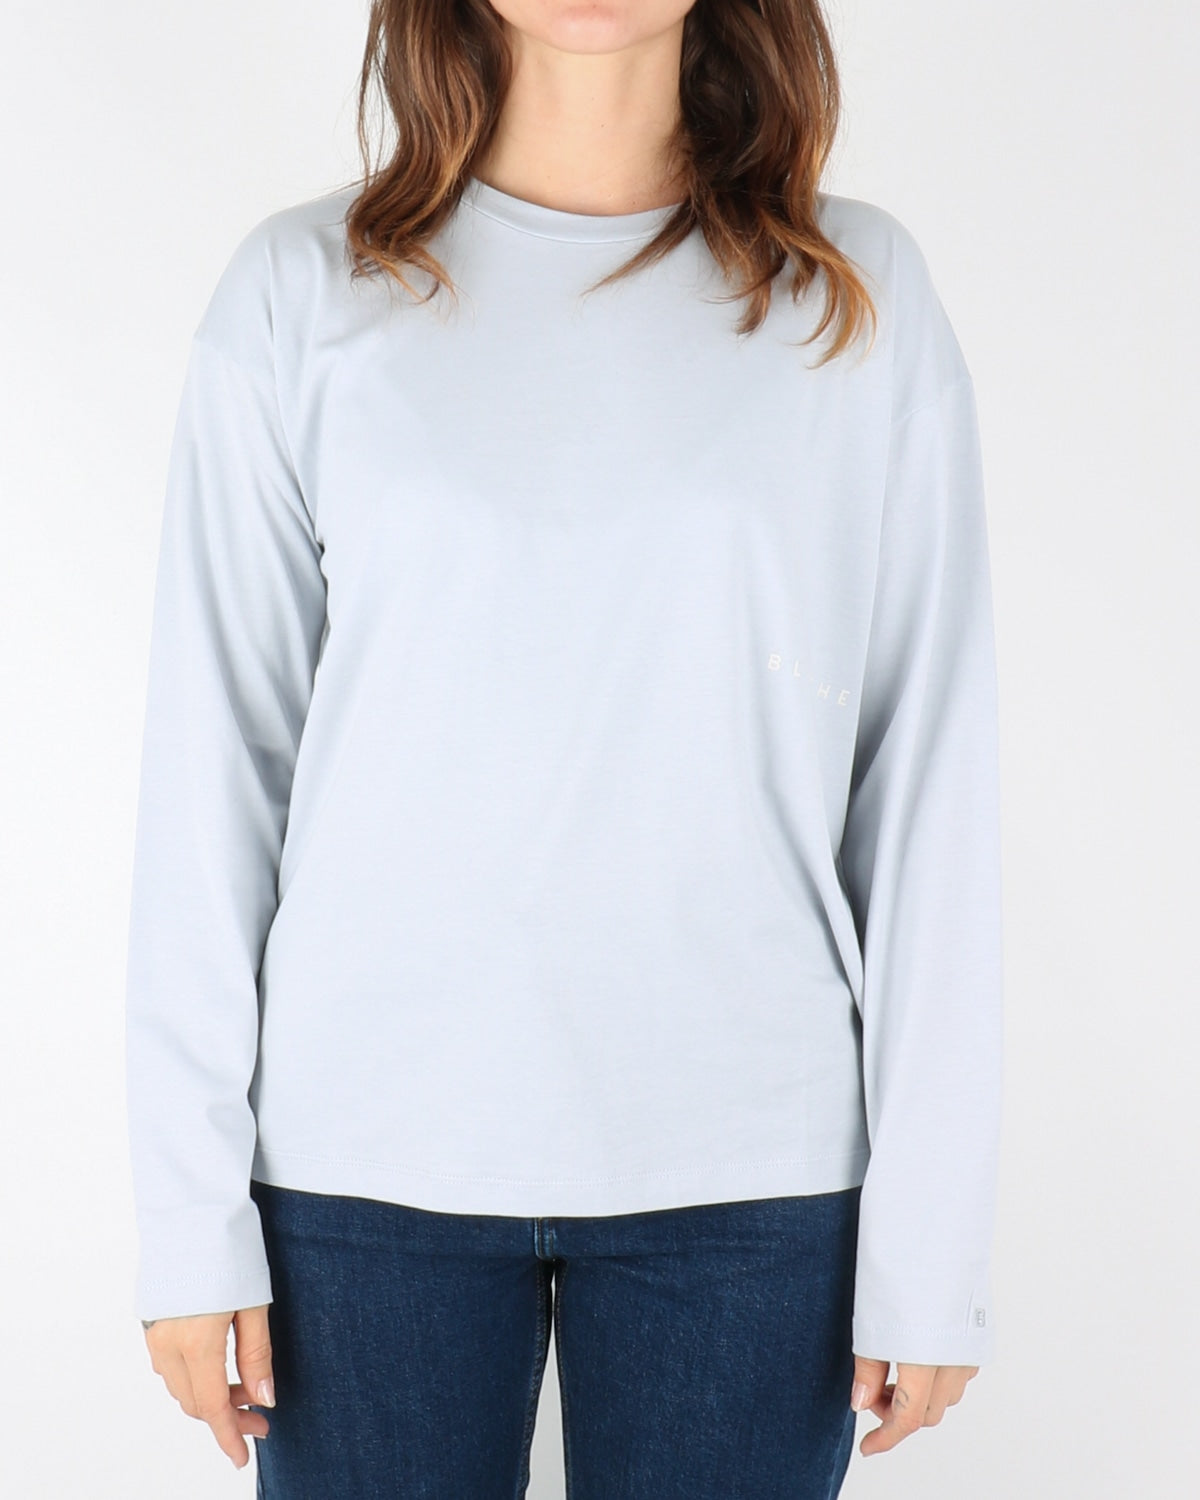 blanche_main light longsleeve_arctic ice_1_4